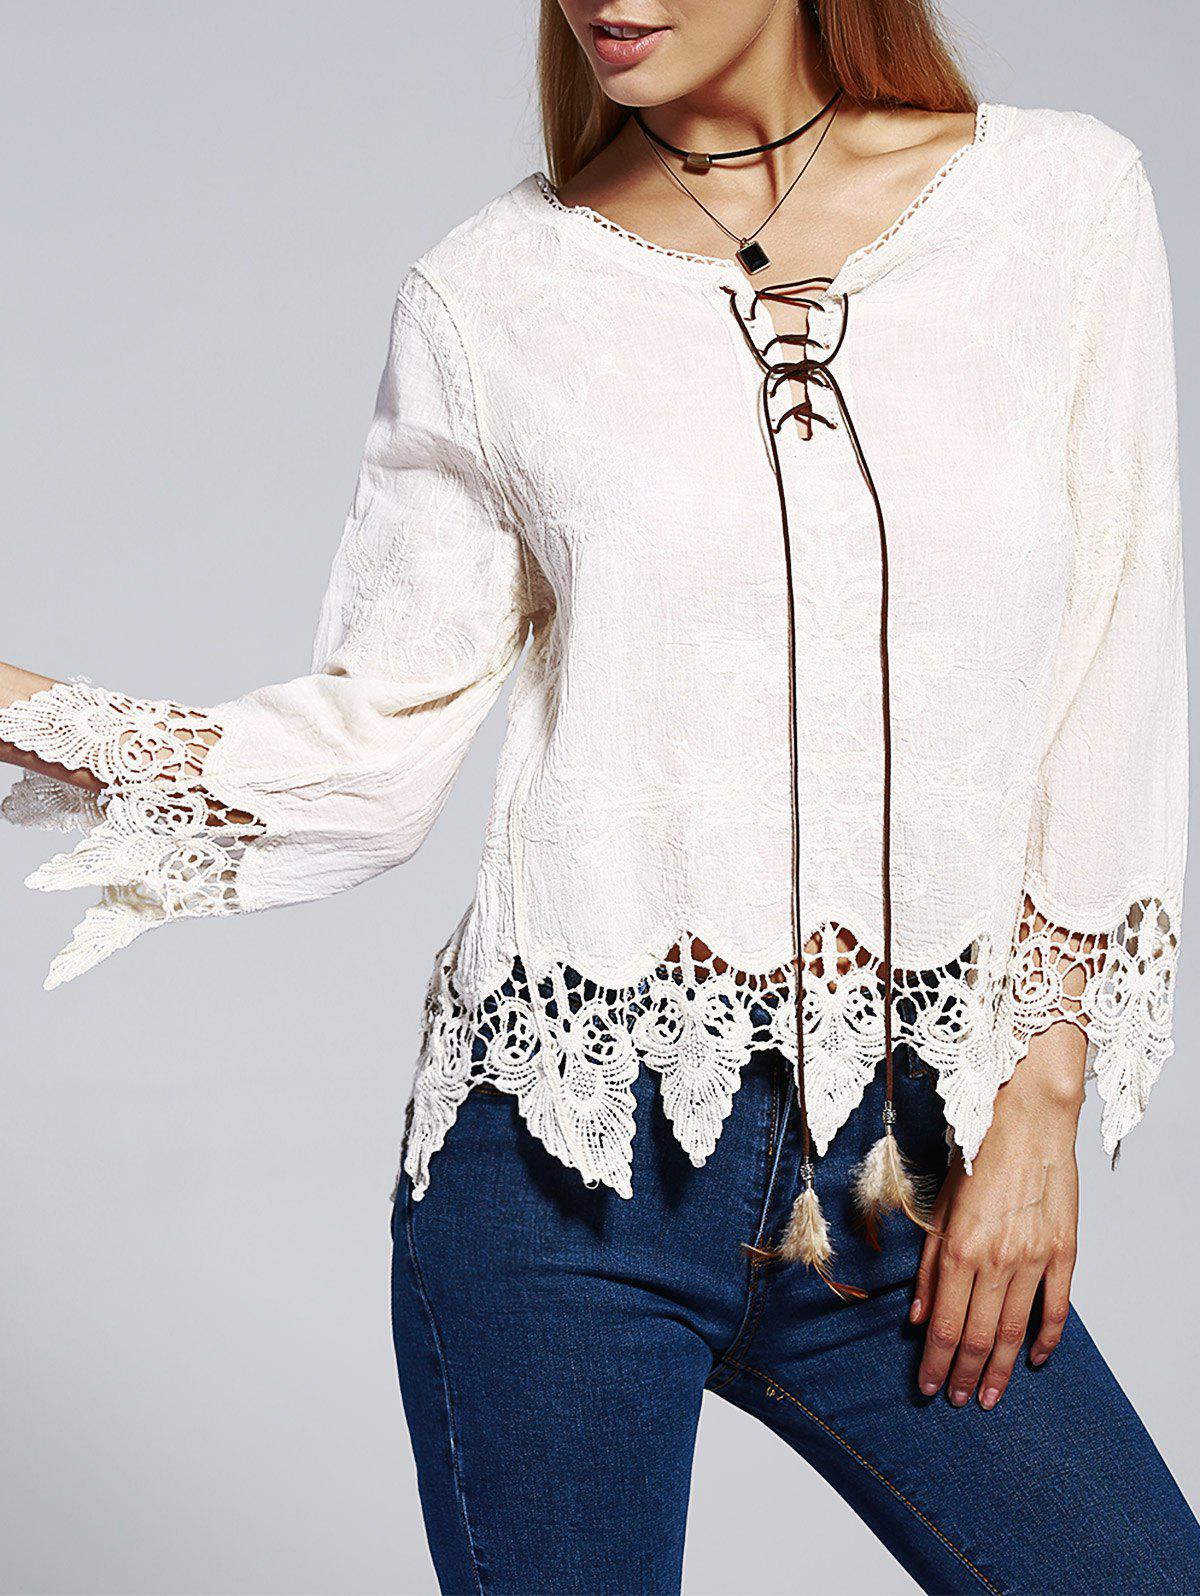 Bohemian Women's V-Neck Lace-Up Lace Panelled Nine-Minute Sleeves Blouse